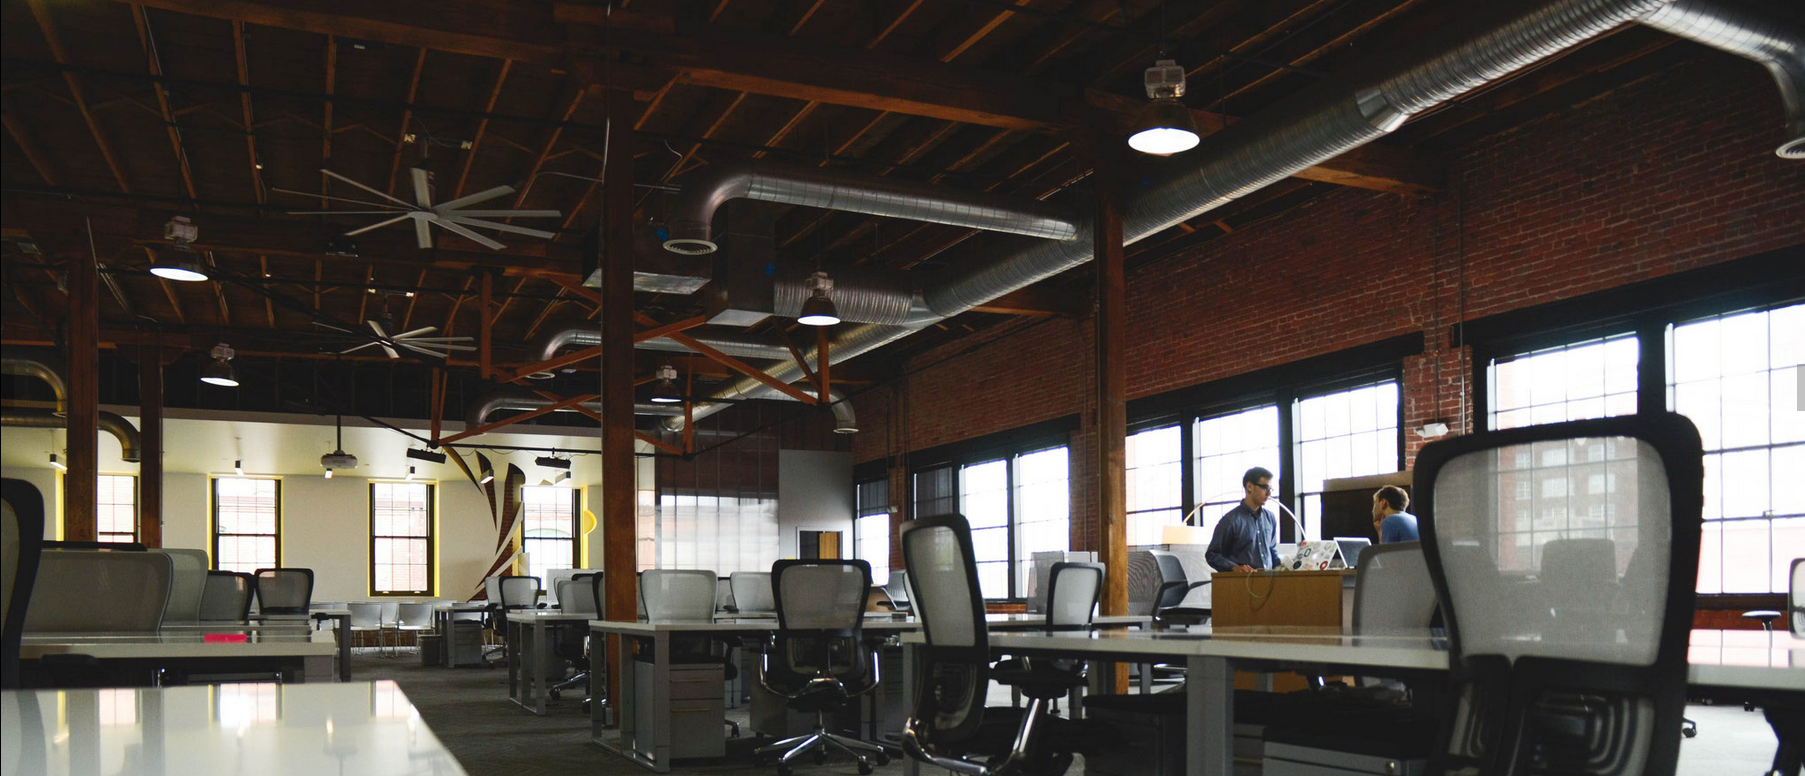 Indoor climate in open plan offices